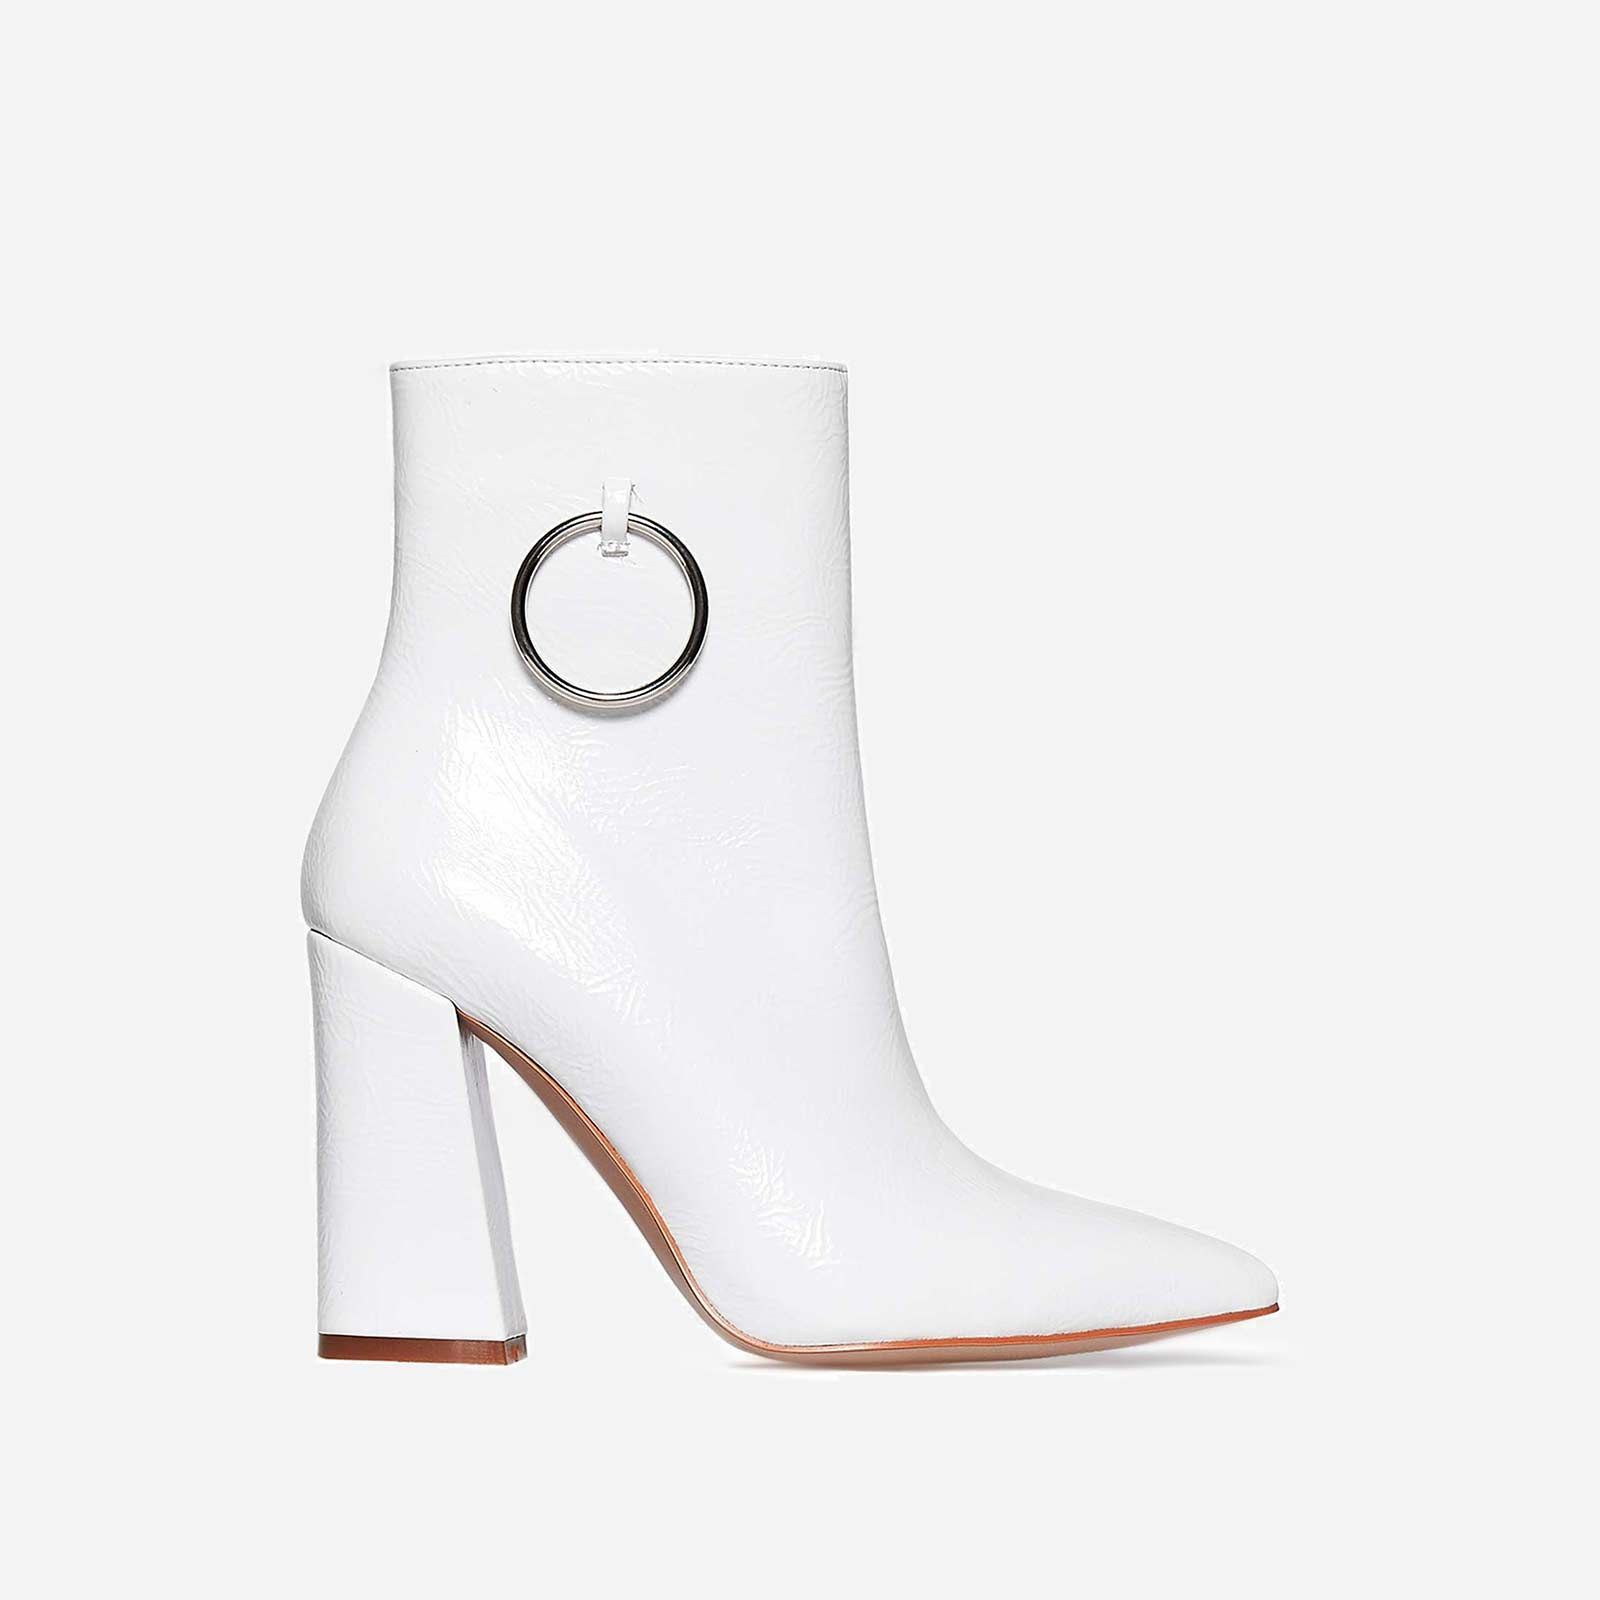 EGO WHITE ANKLE BOOTS WITH RING